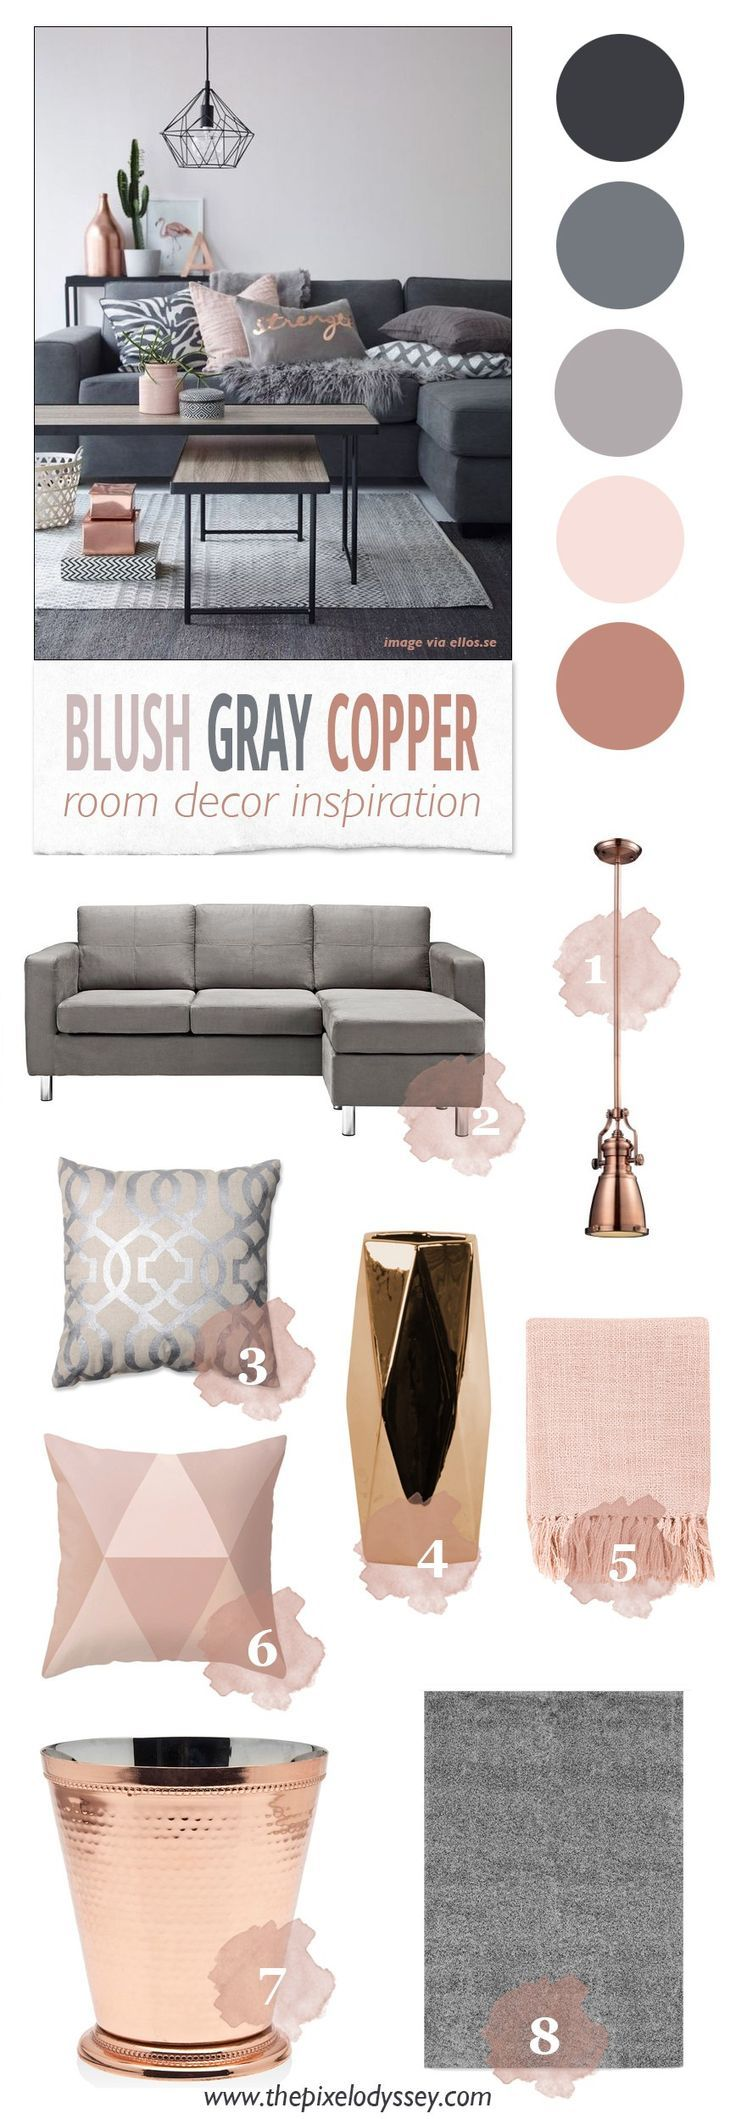 Gaat om de kleurencombinatie!Blush Gray Copper Room Decor Inspiration - The Pixel Odyssey